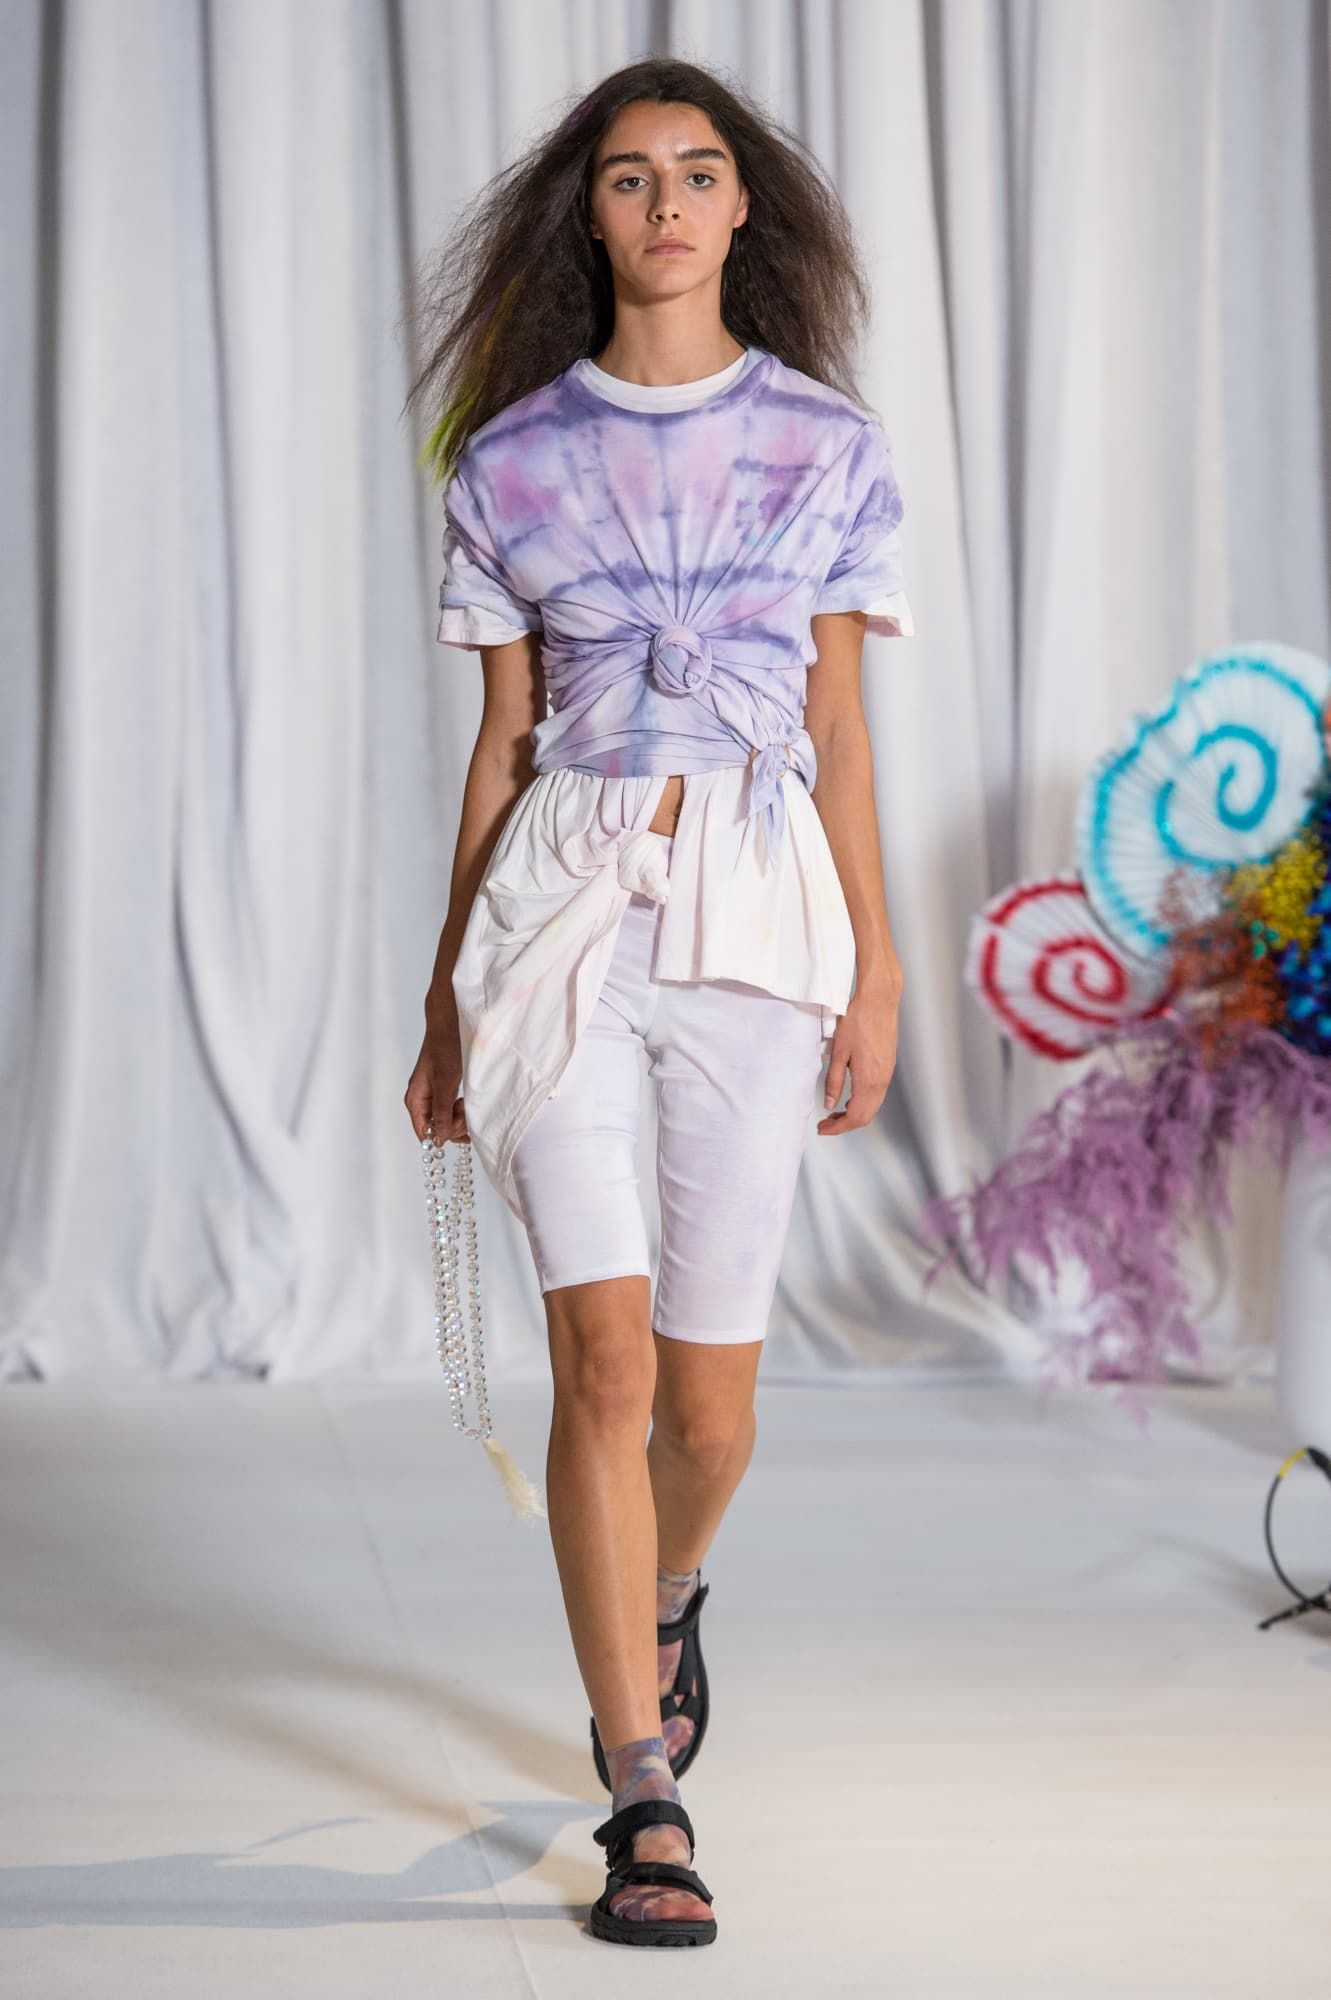 bcb85ea7f507 Collina Strada | TIE DYE | 9 BREAKOUT TRENDS FROM NEW YORK FASHION WEEK SPRING  2019